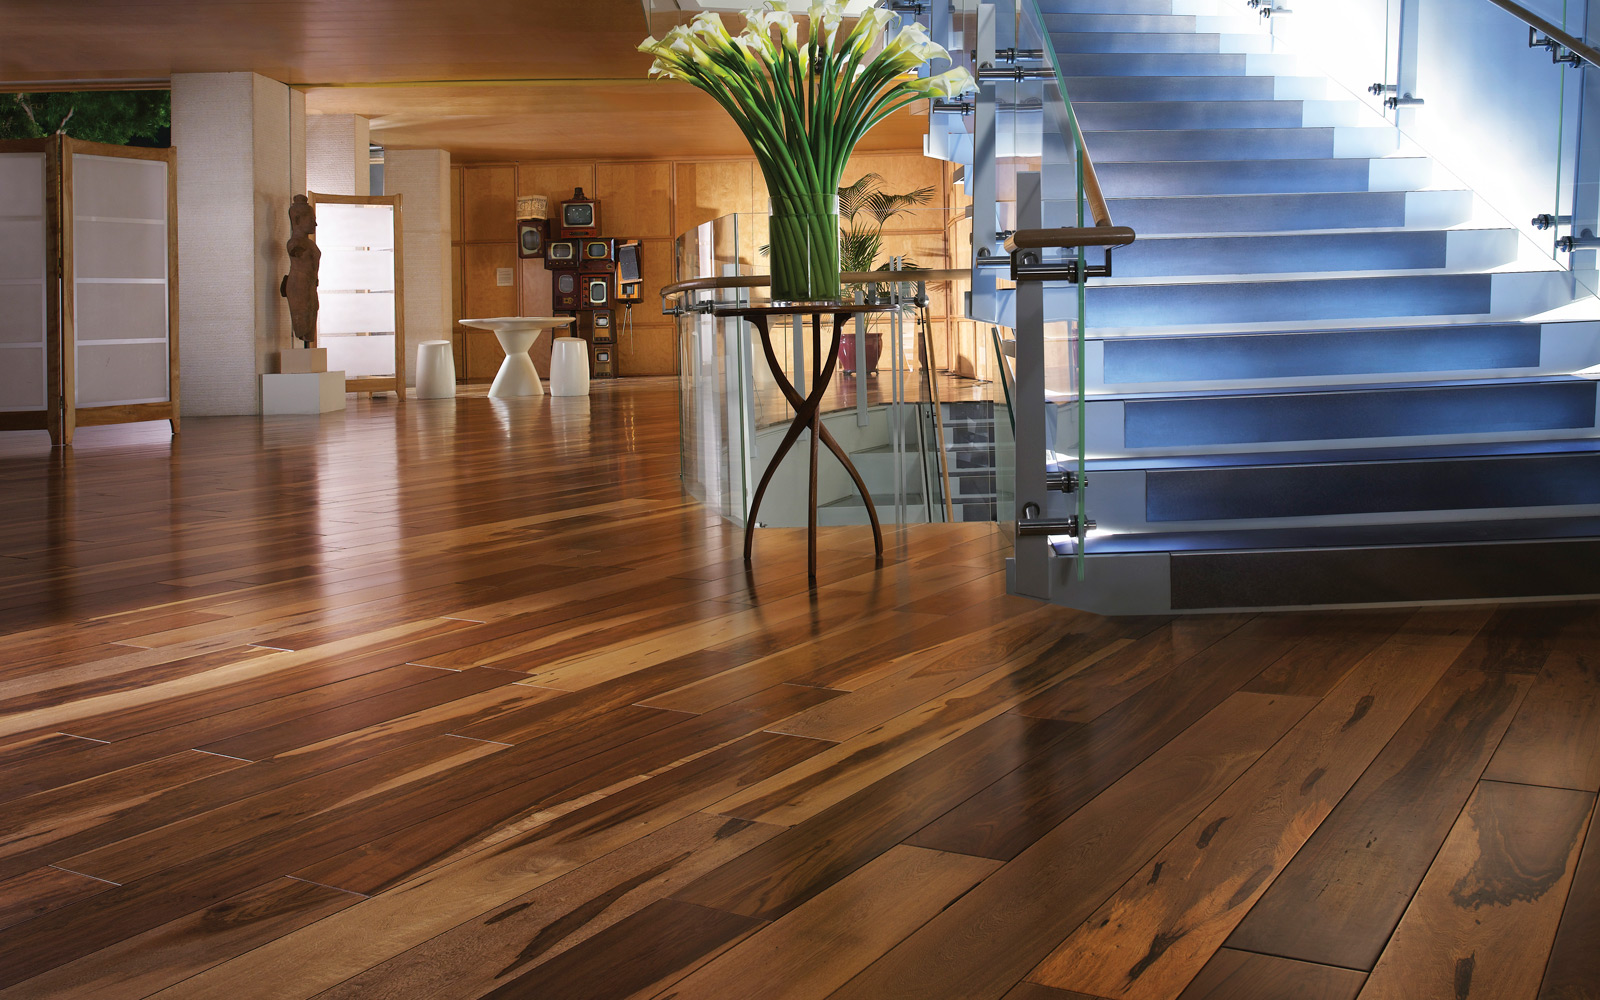 What To Expect From Newly Installed Hardwood Flooring